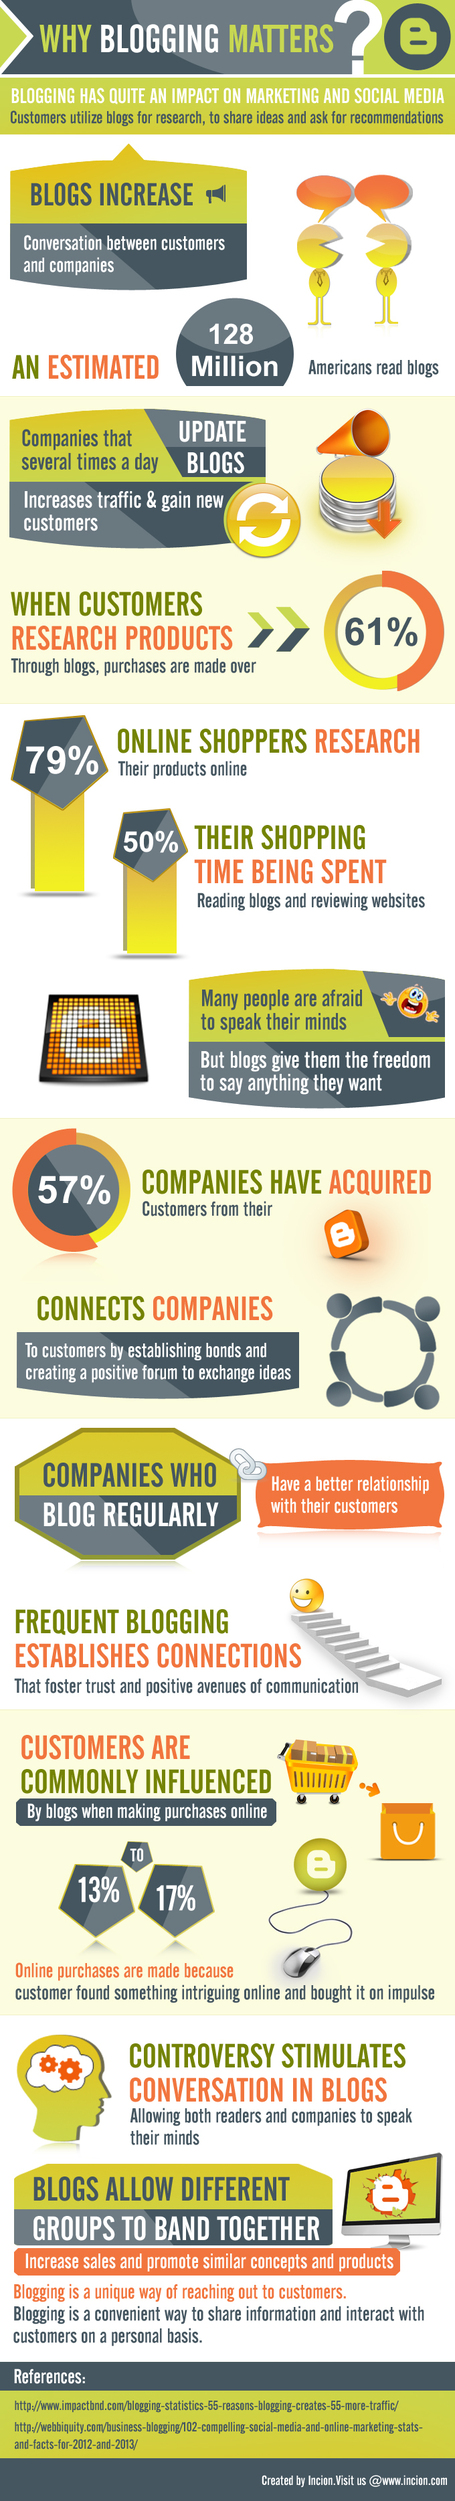 Why Blogging Matters? #infographic #contentmarketing #blogging | Webmarketing - Referencement SEO - SEA - SMO | Scoop.it